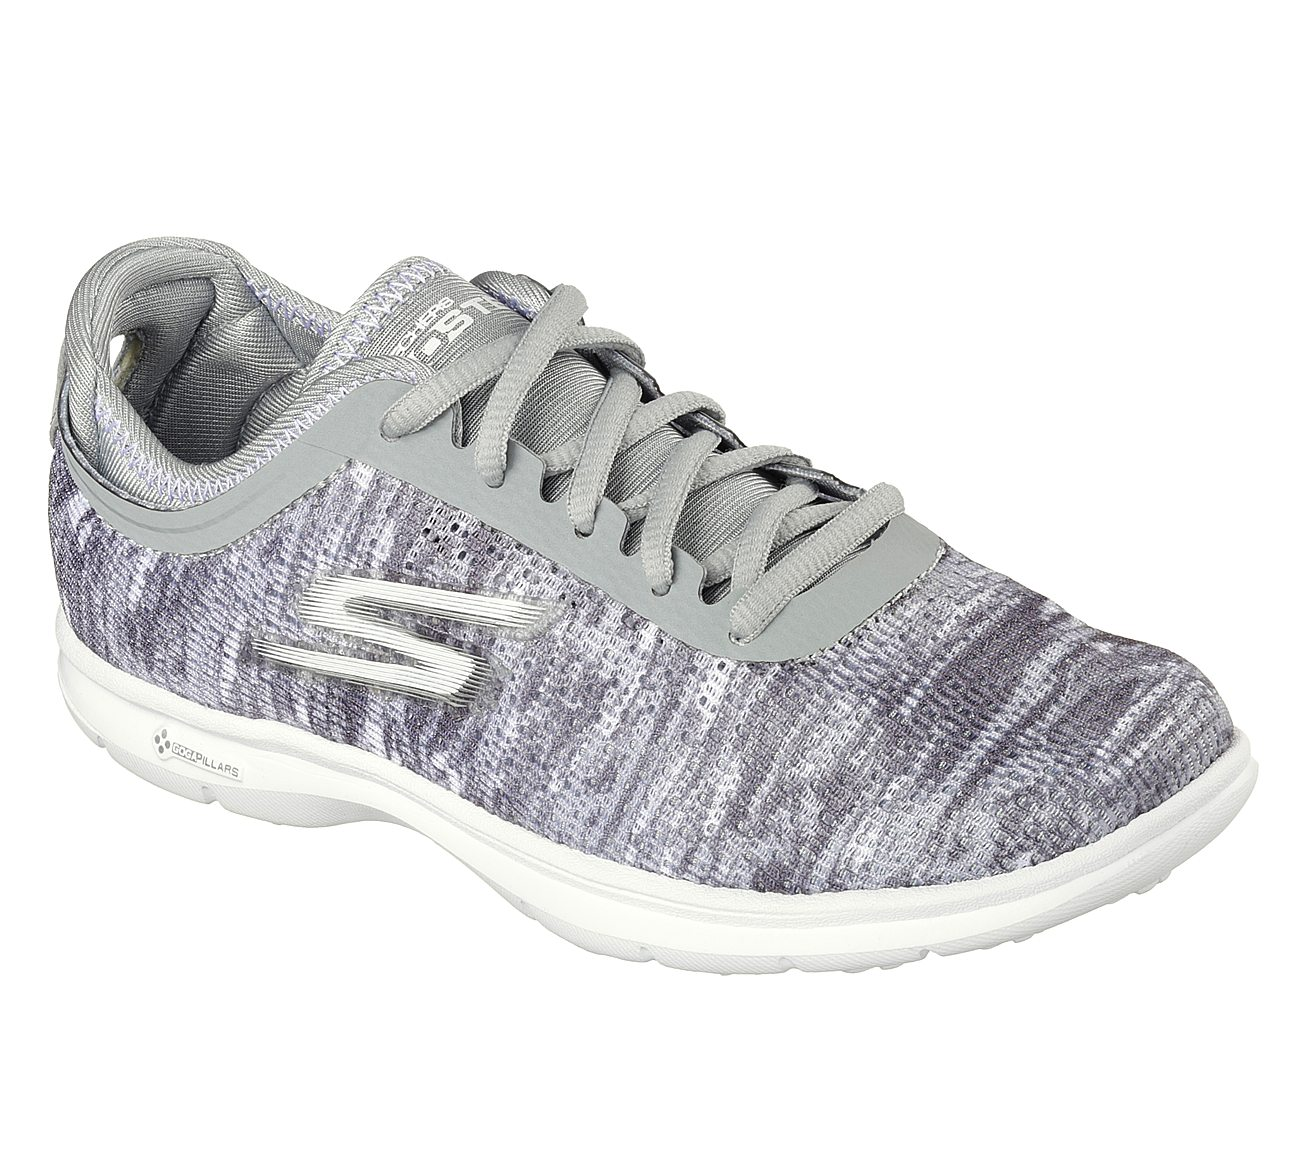 1720f29c80b0 Buy SKECHERS Skechers GO STEP GO STEP Shoes only  70.00